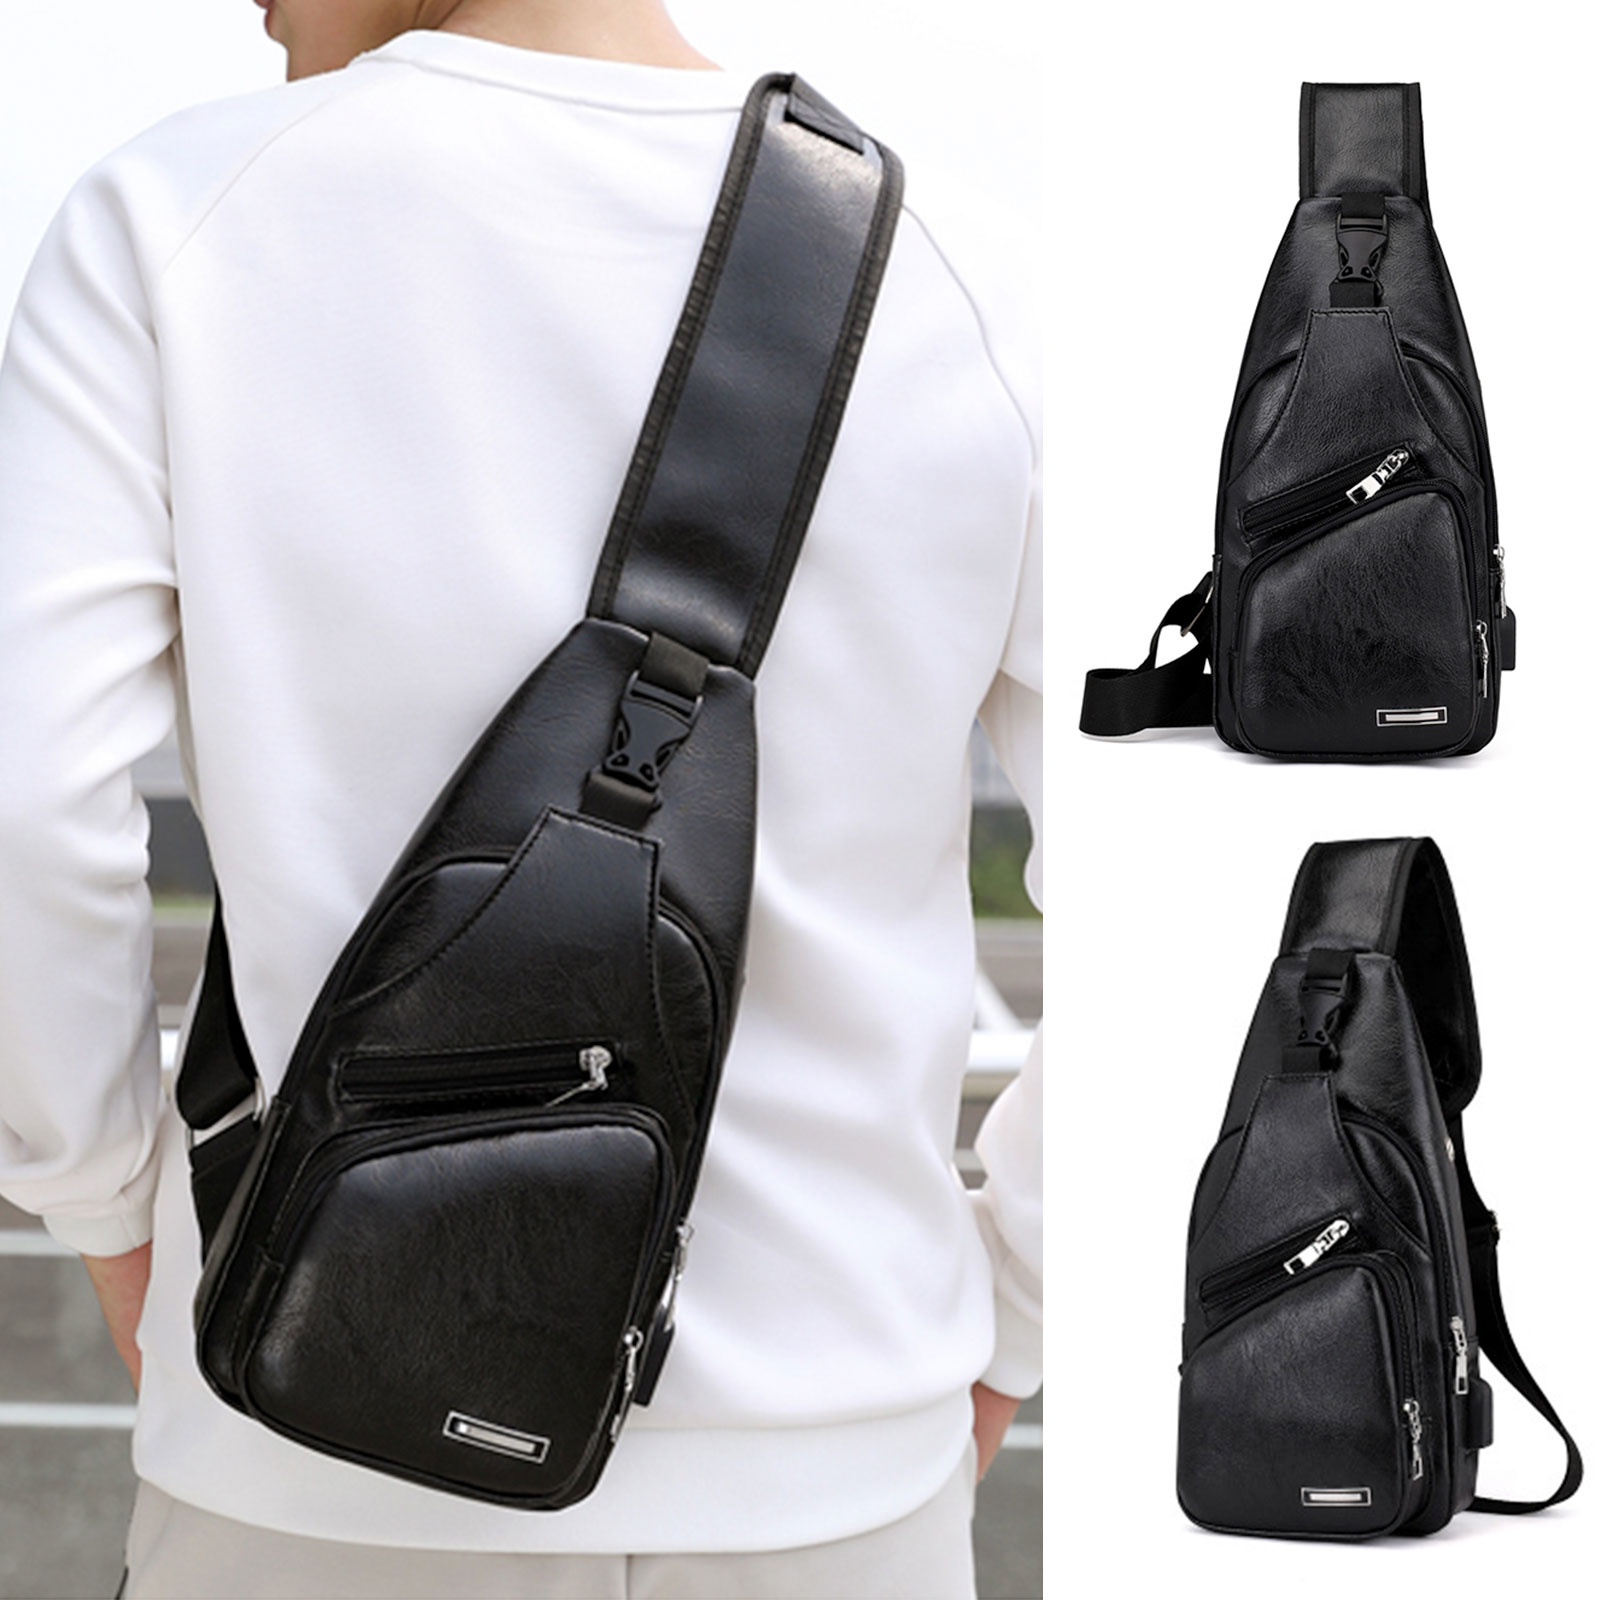 Cute Shark Listening To Music Messenger Bag Crossbody Bag Large Durable Shoulder School Or Business Bag Oxford Fabric For Mens Womens